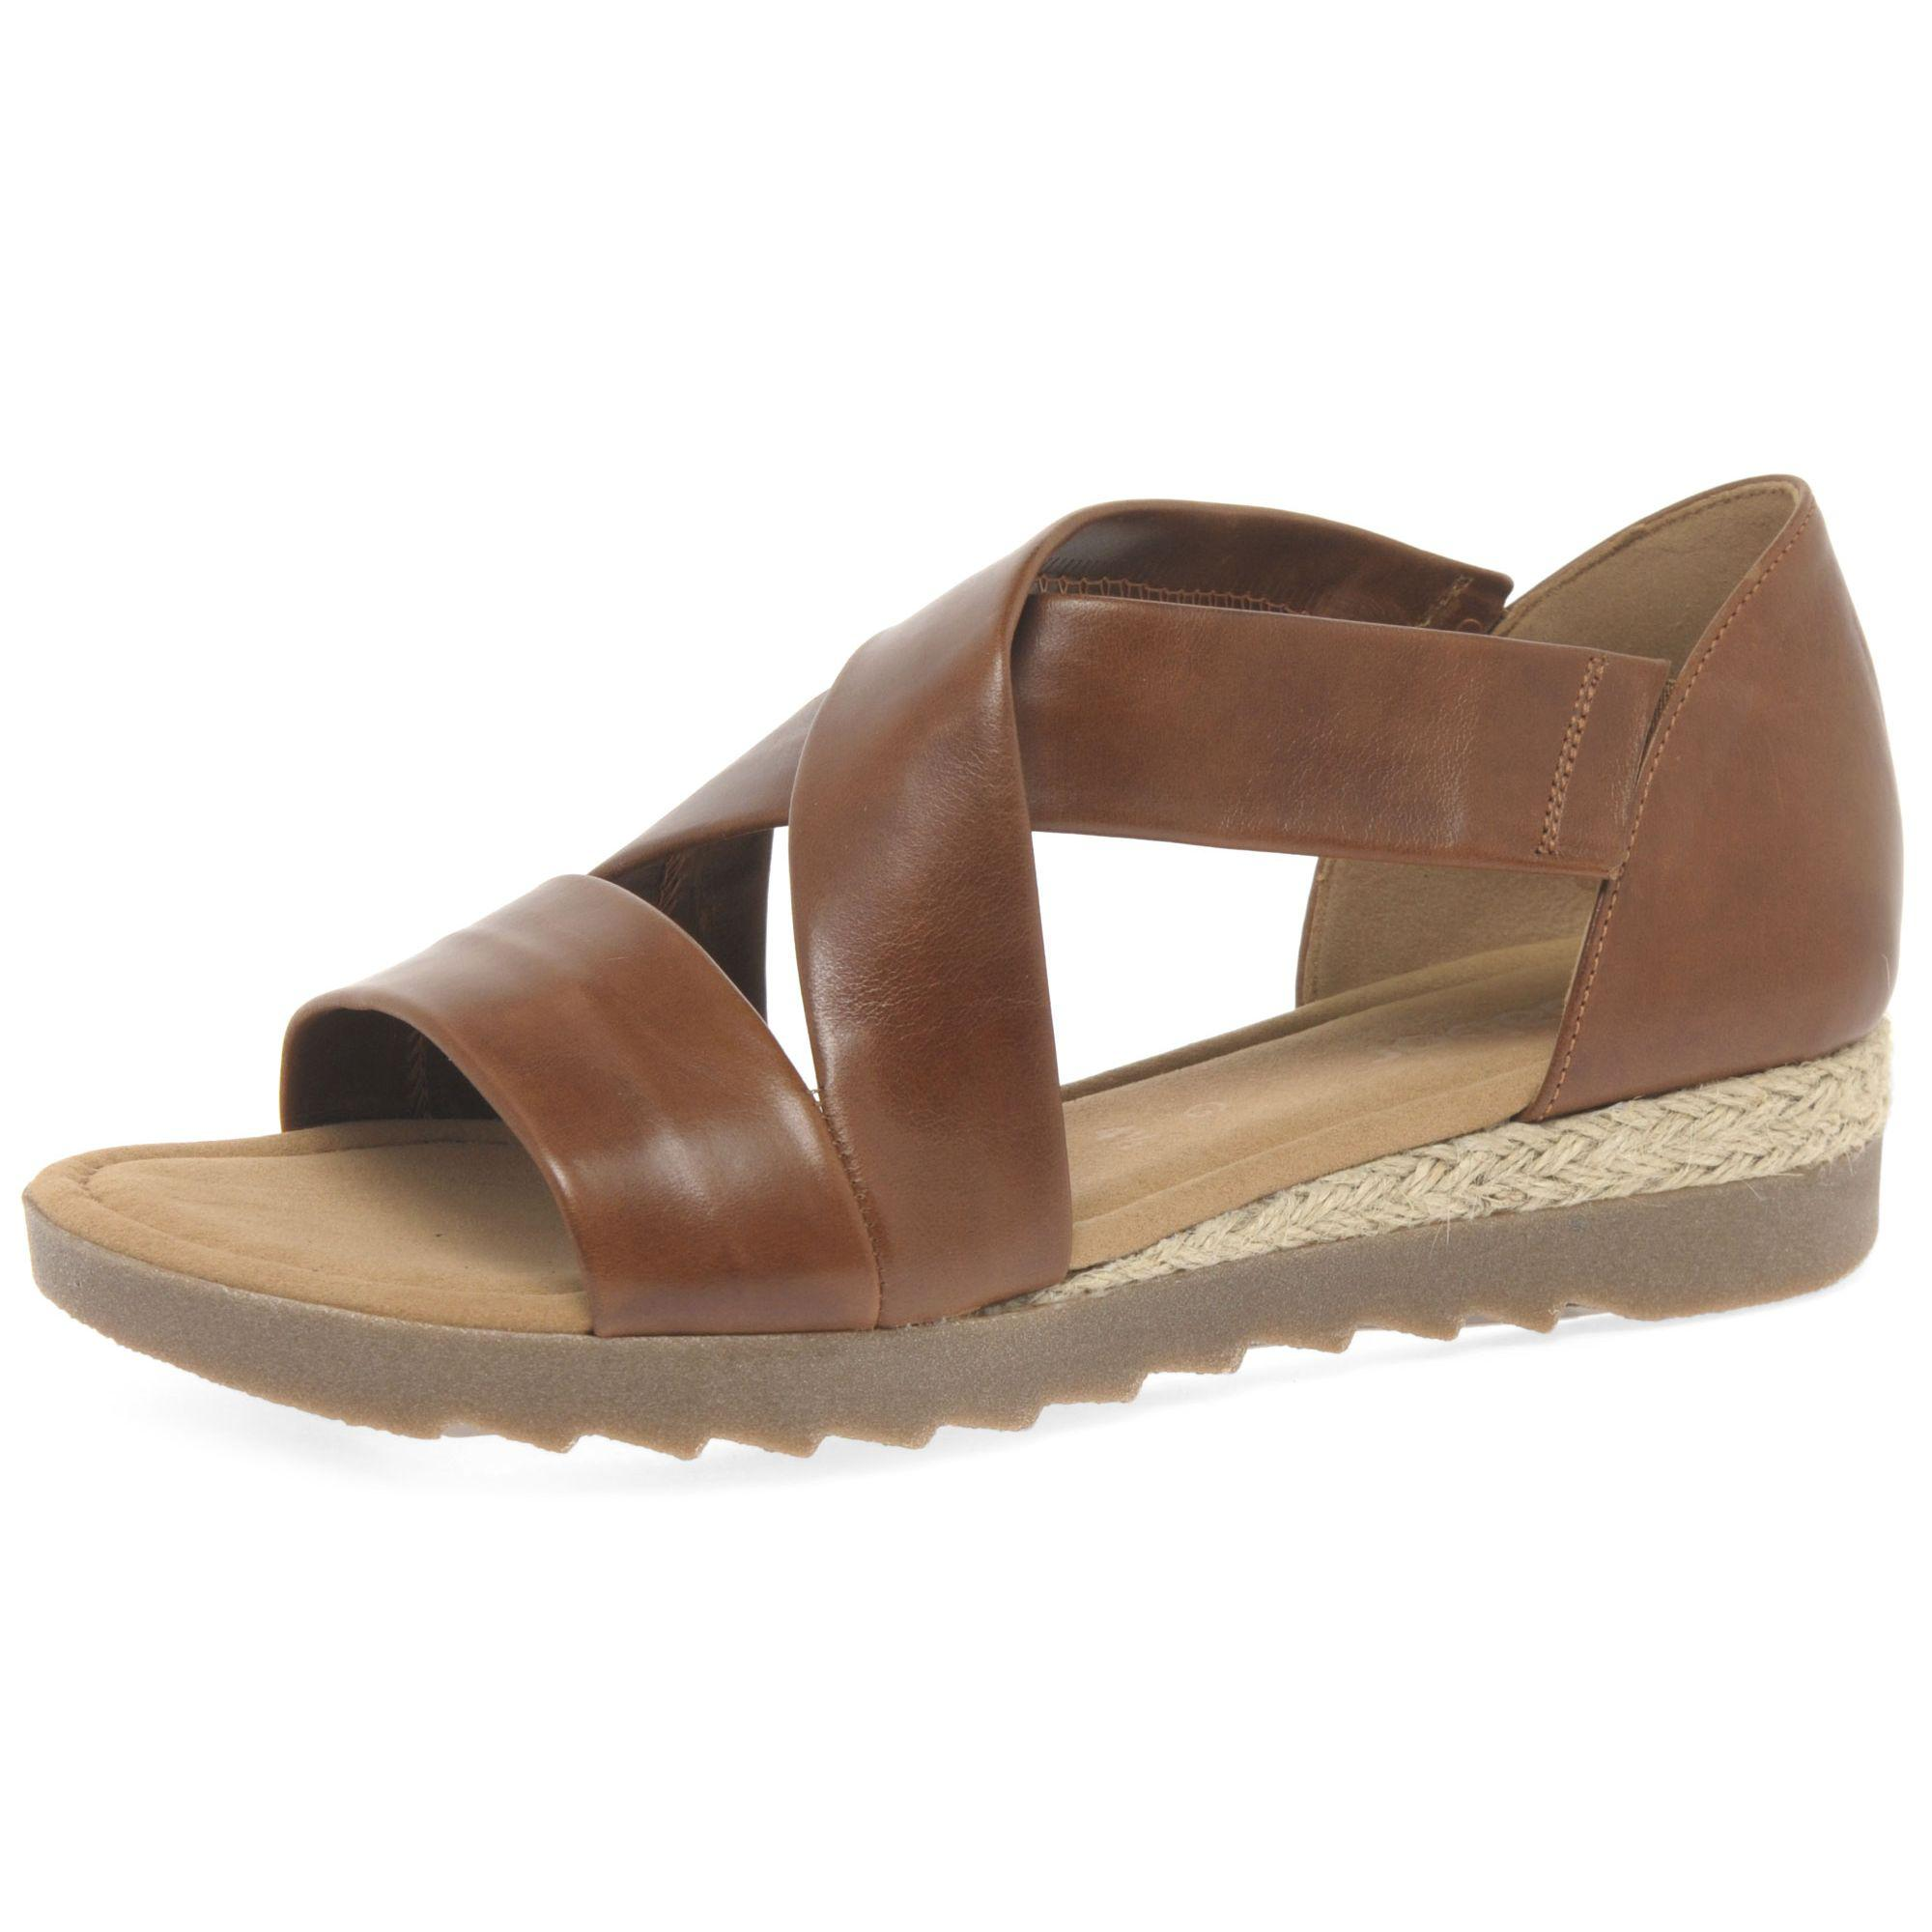 2e027ceb4dc John Lewis Gabor Promise Wide Fit Sandals in Brown - Lyst